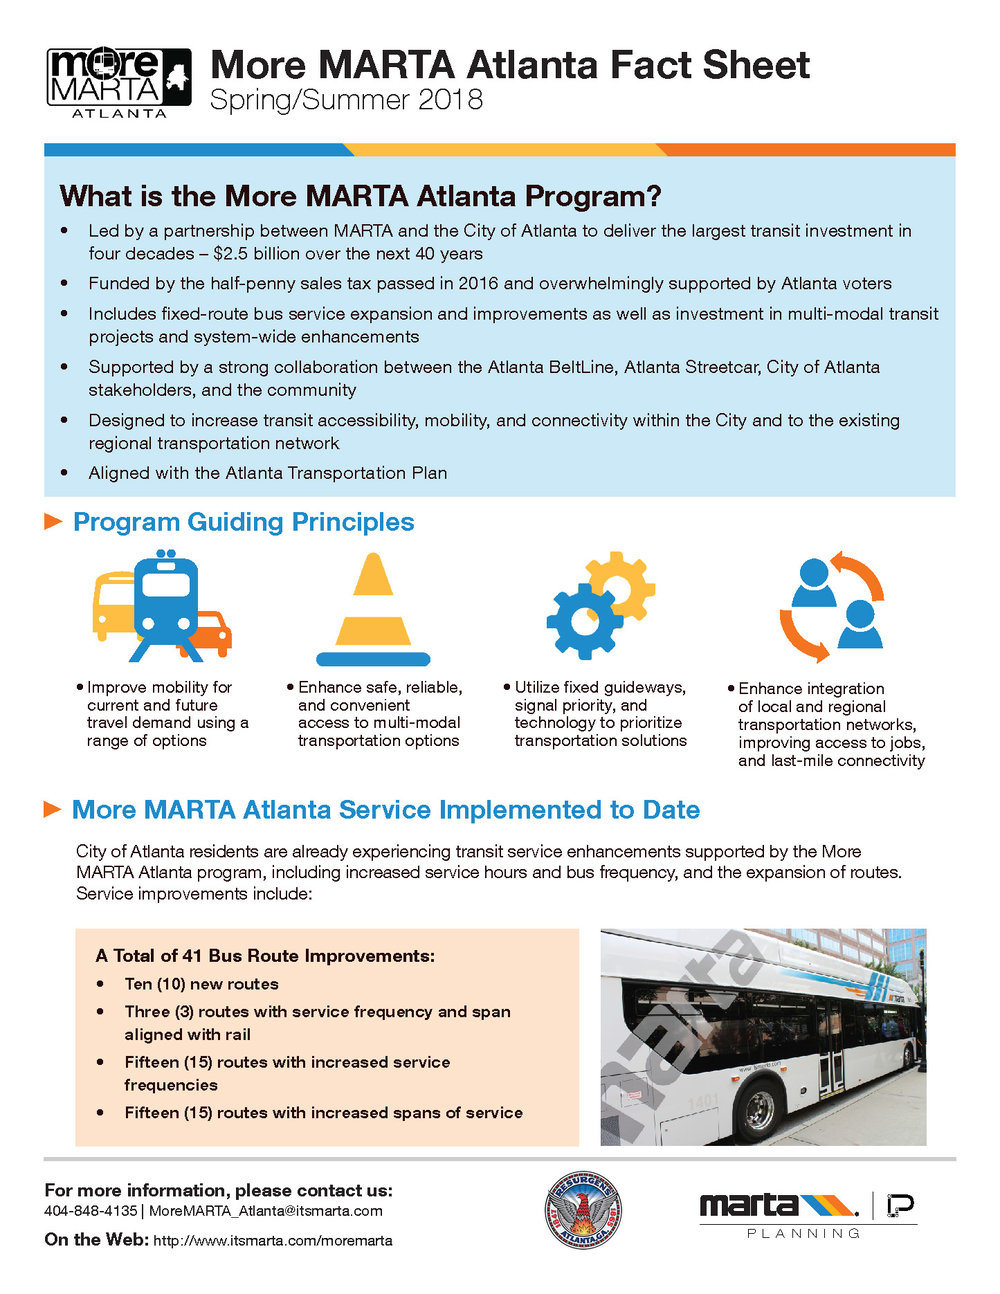 More+MARTA+Fact+Sheet+060418+v4+ATTACH+UNDER+INTRODUCTION+AS+A+POPUP_Page_1.jpg